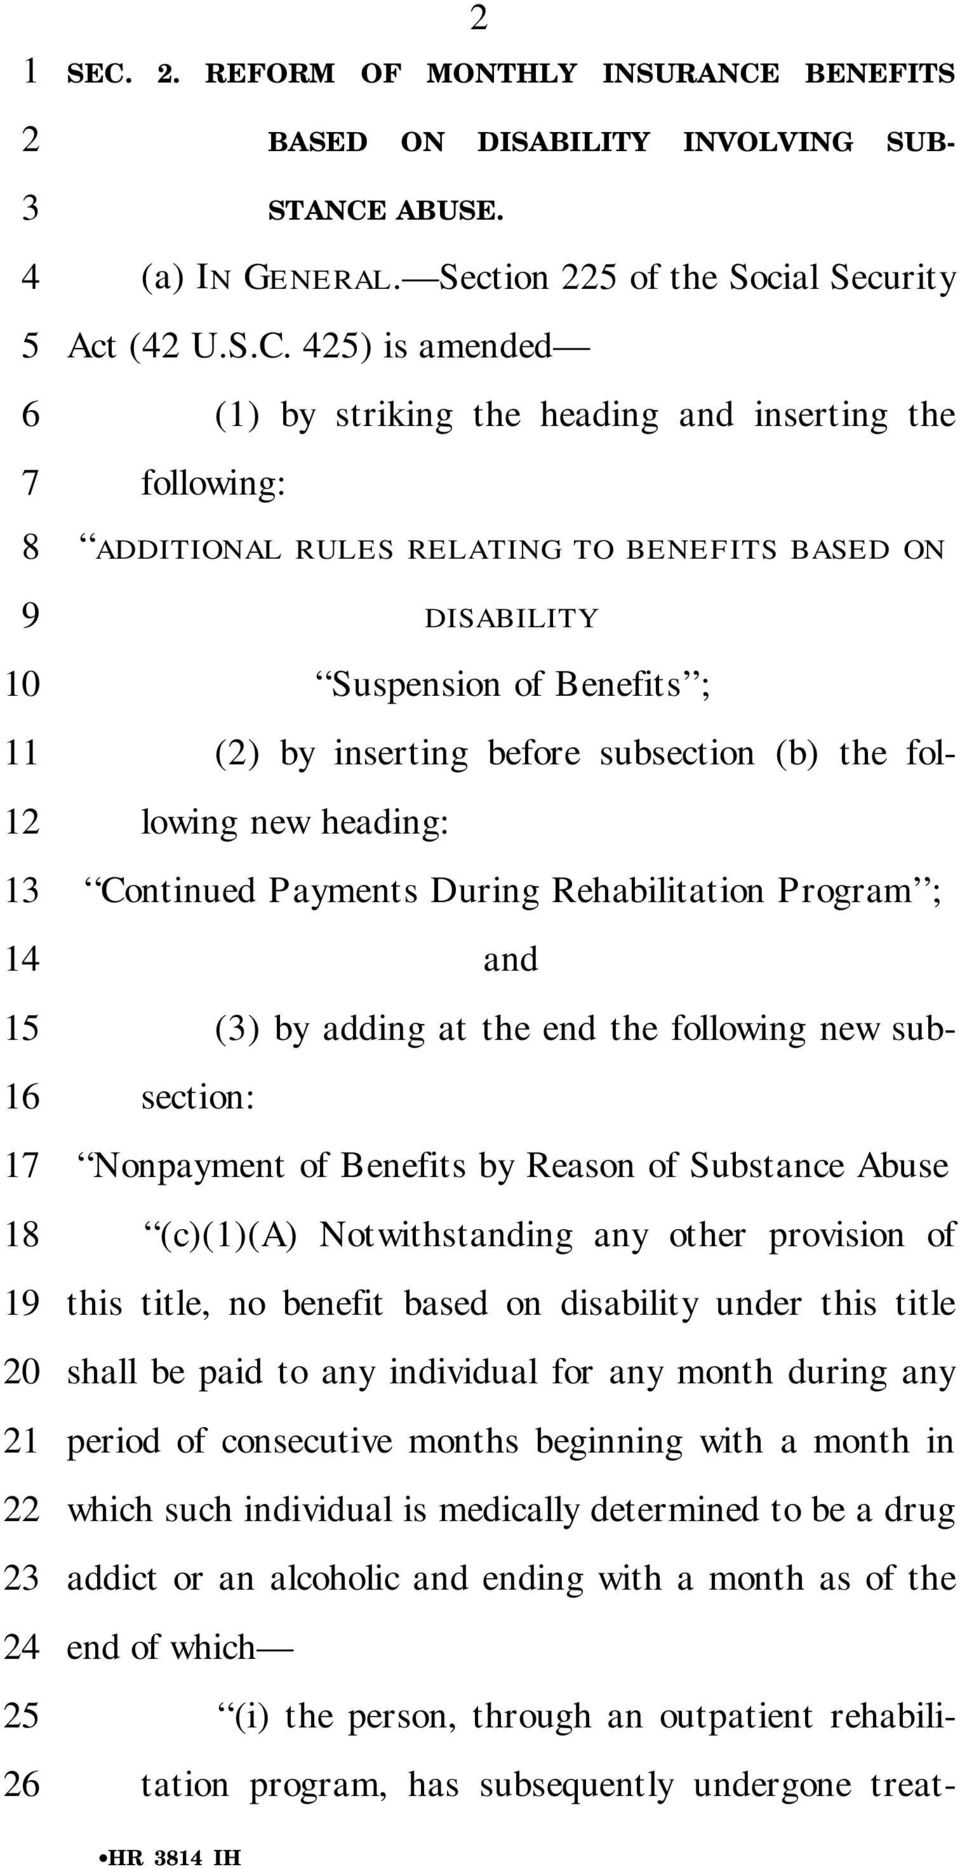 BENEFITS BASED ON DISABILITY INVOLVING SUB- STANCE